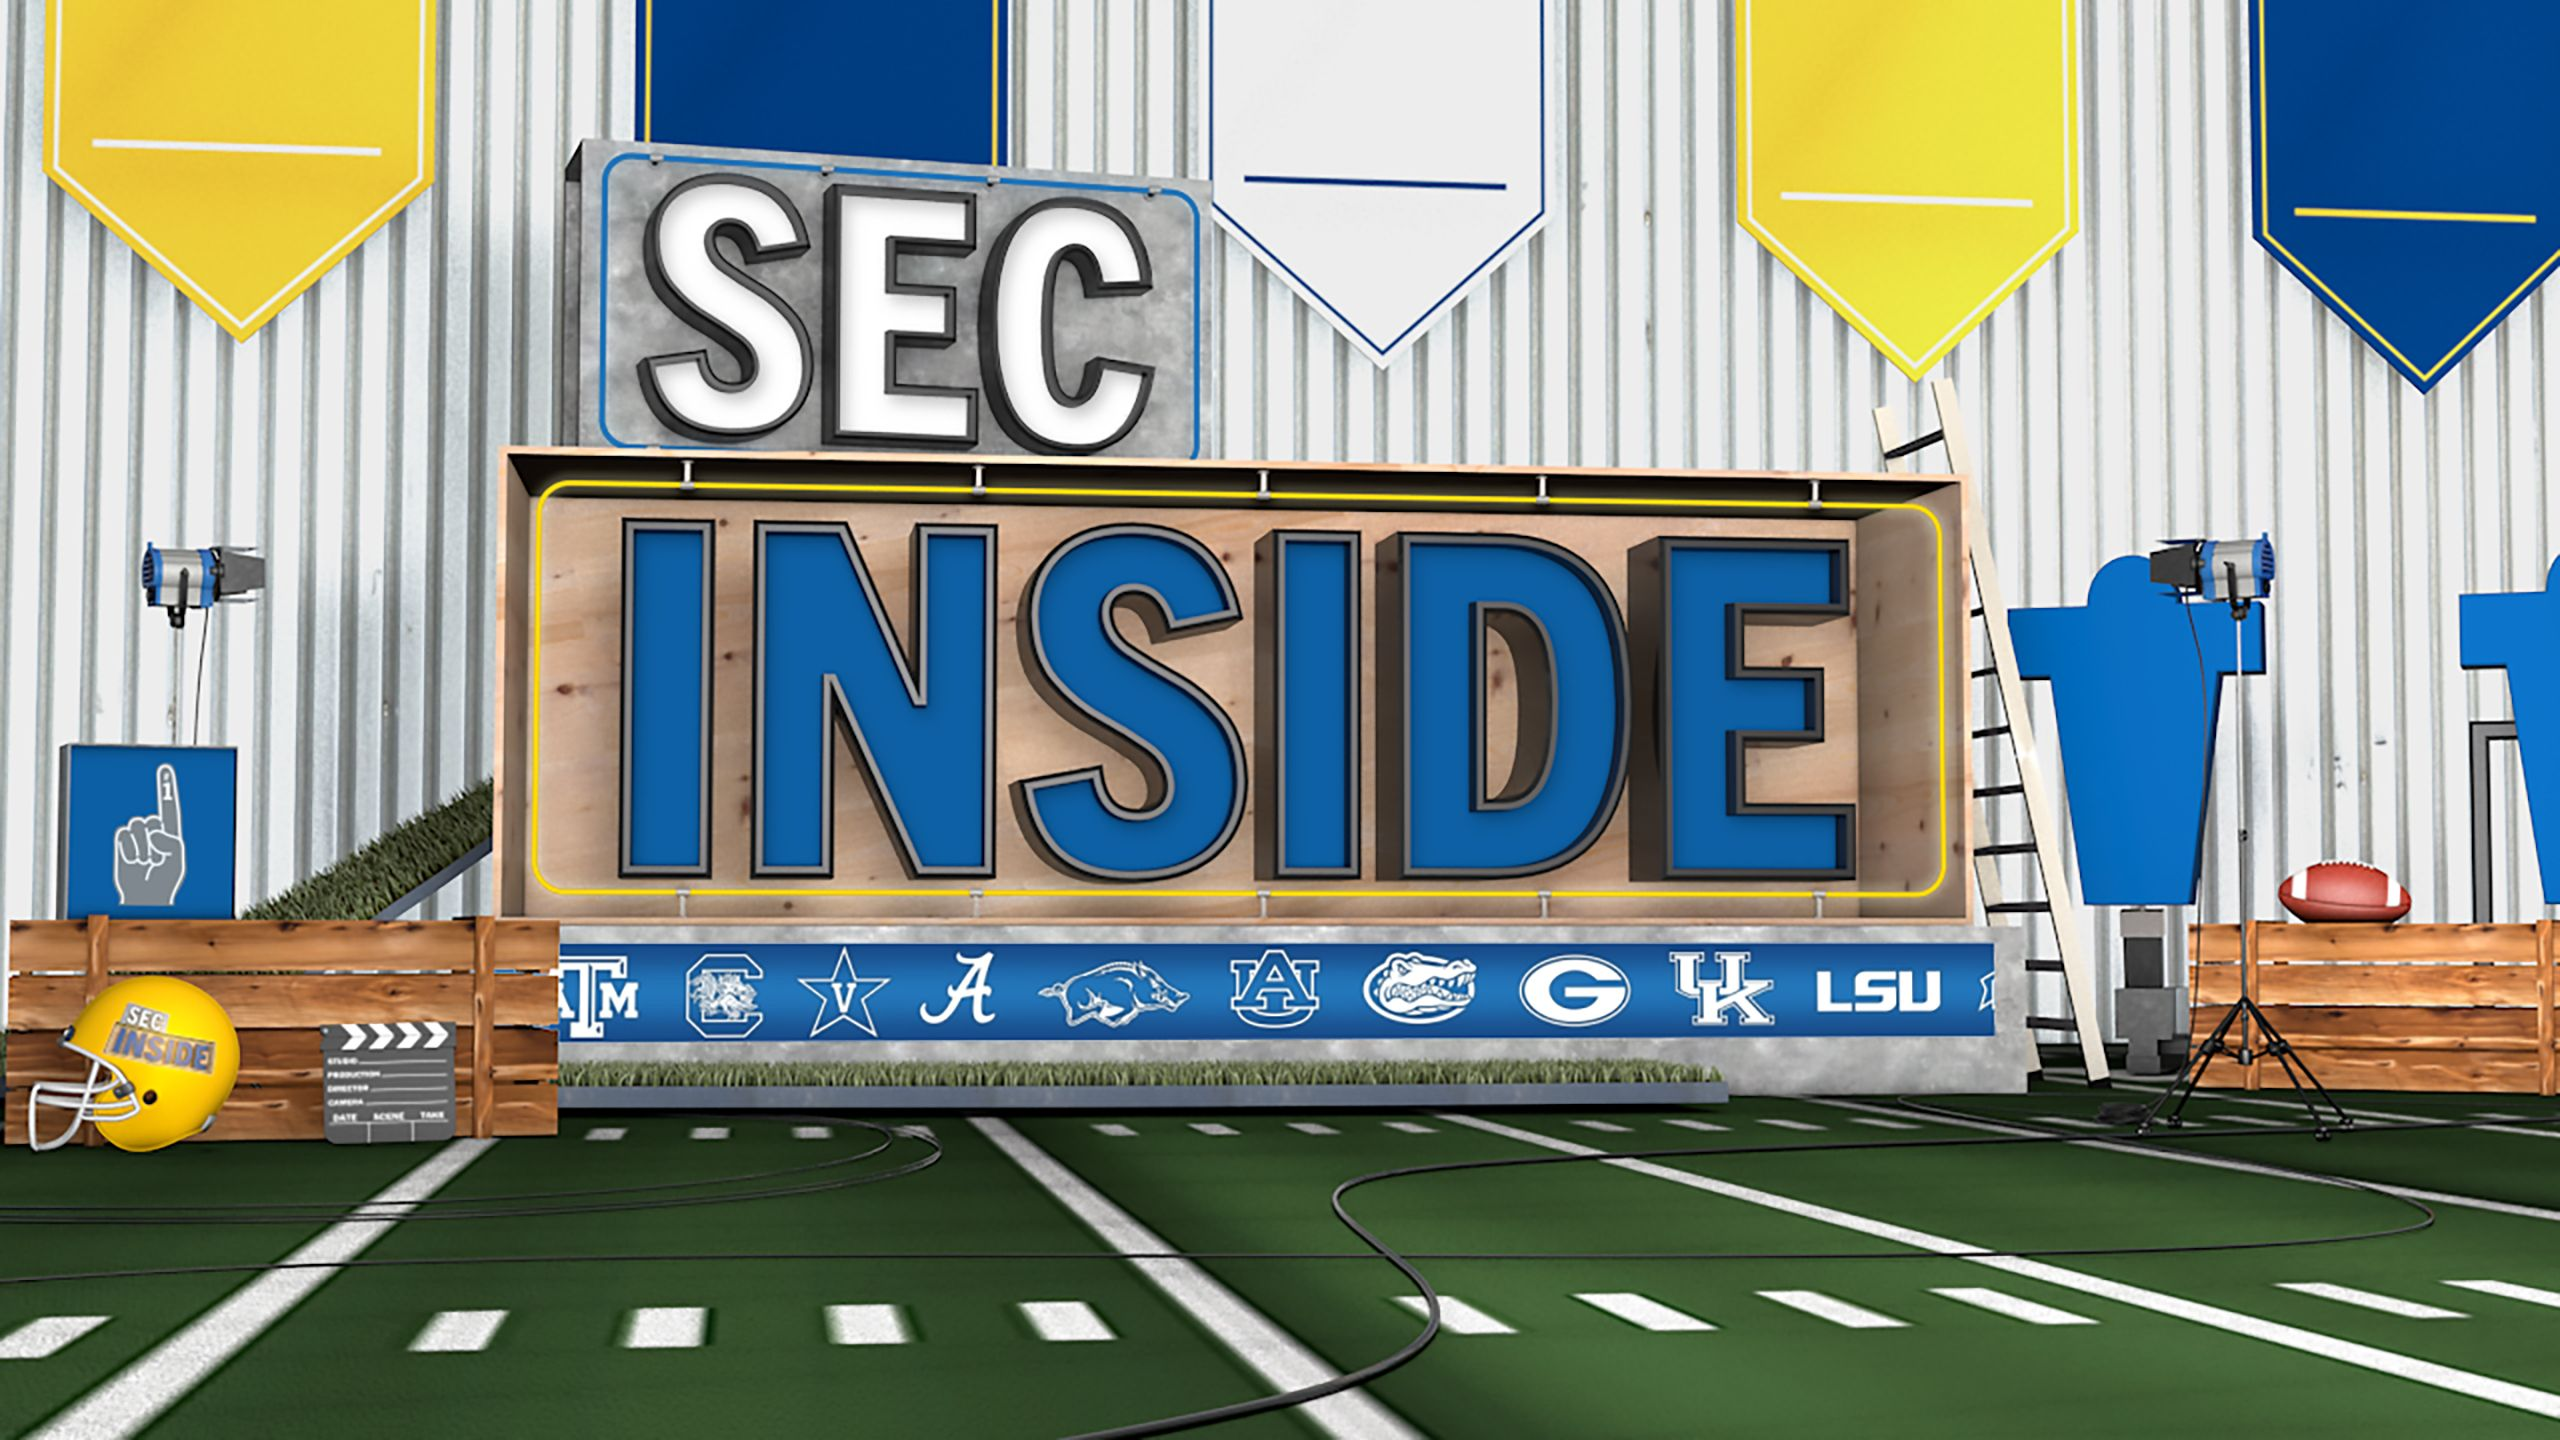 SEC Inside: Tennessee Basketball Presented by Jimmy John's